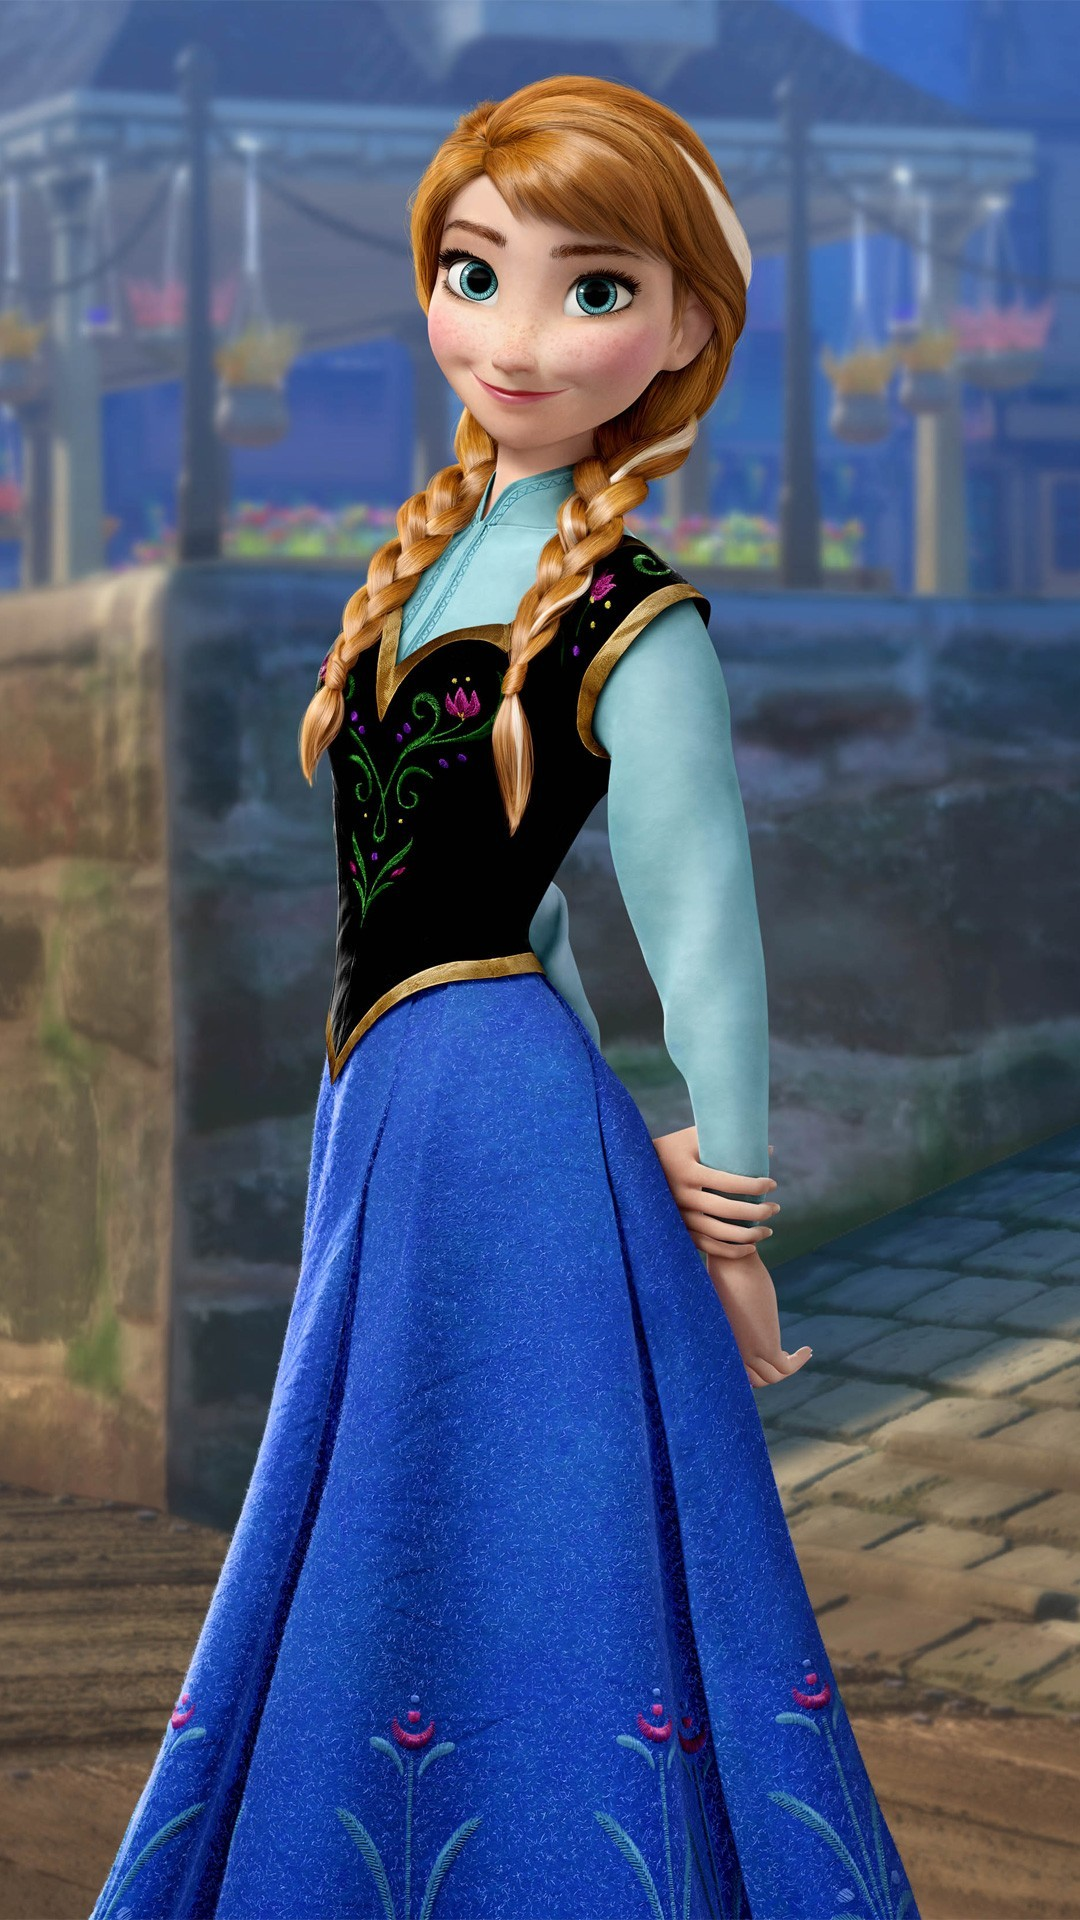 anna-frozen-images-Google-Search-wallpaper-wpc5802184